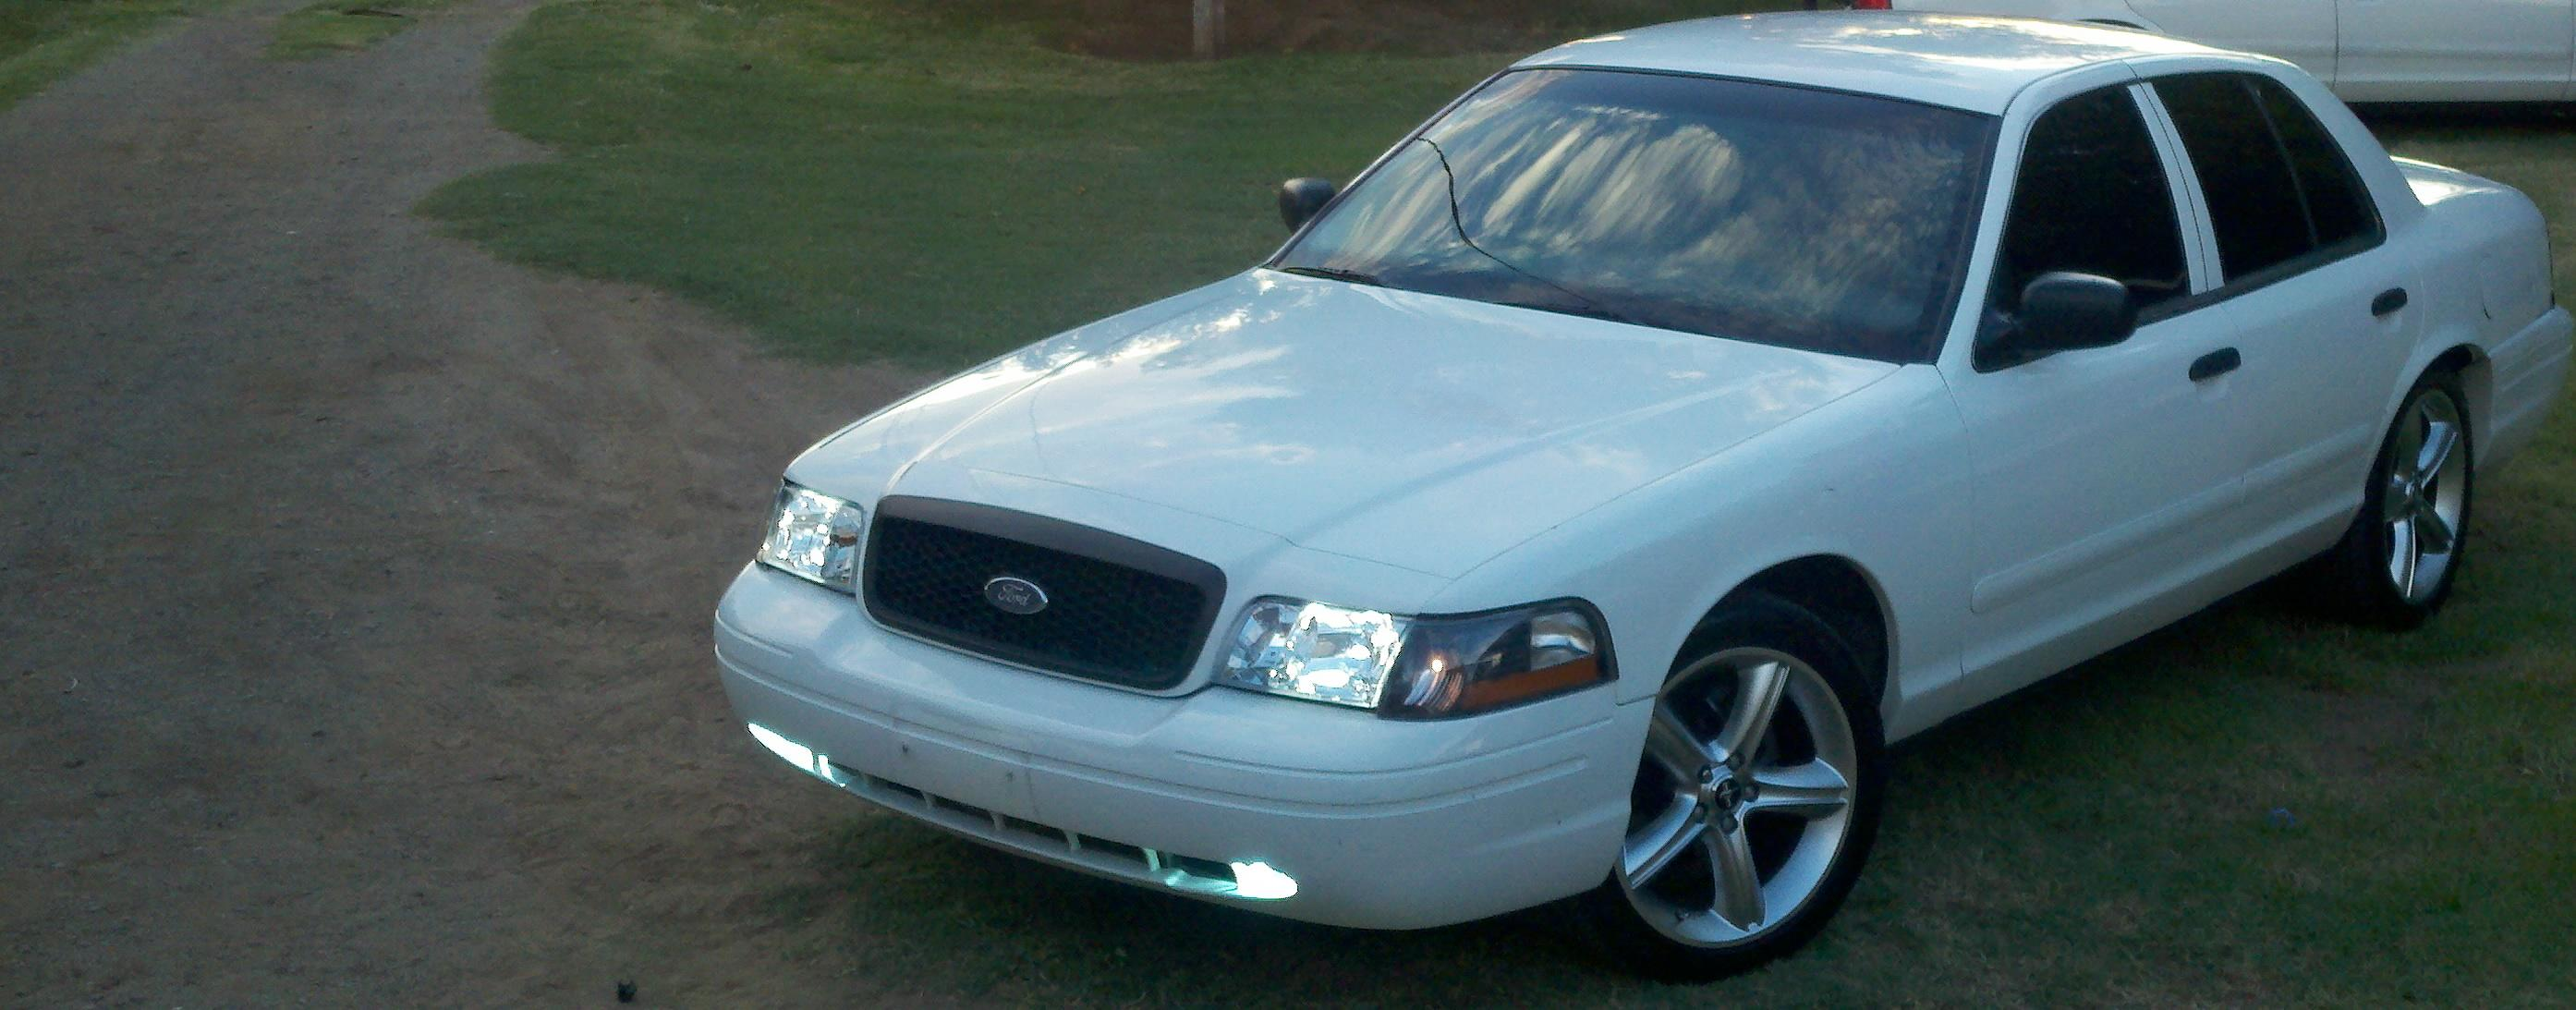 Elcrownvic 2001 ford crown victoria